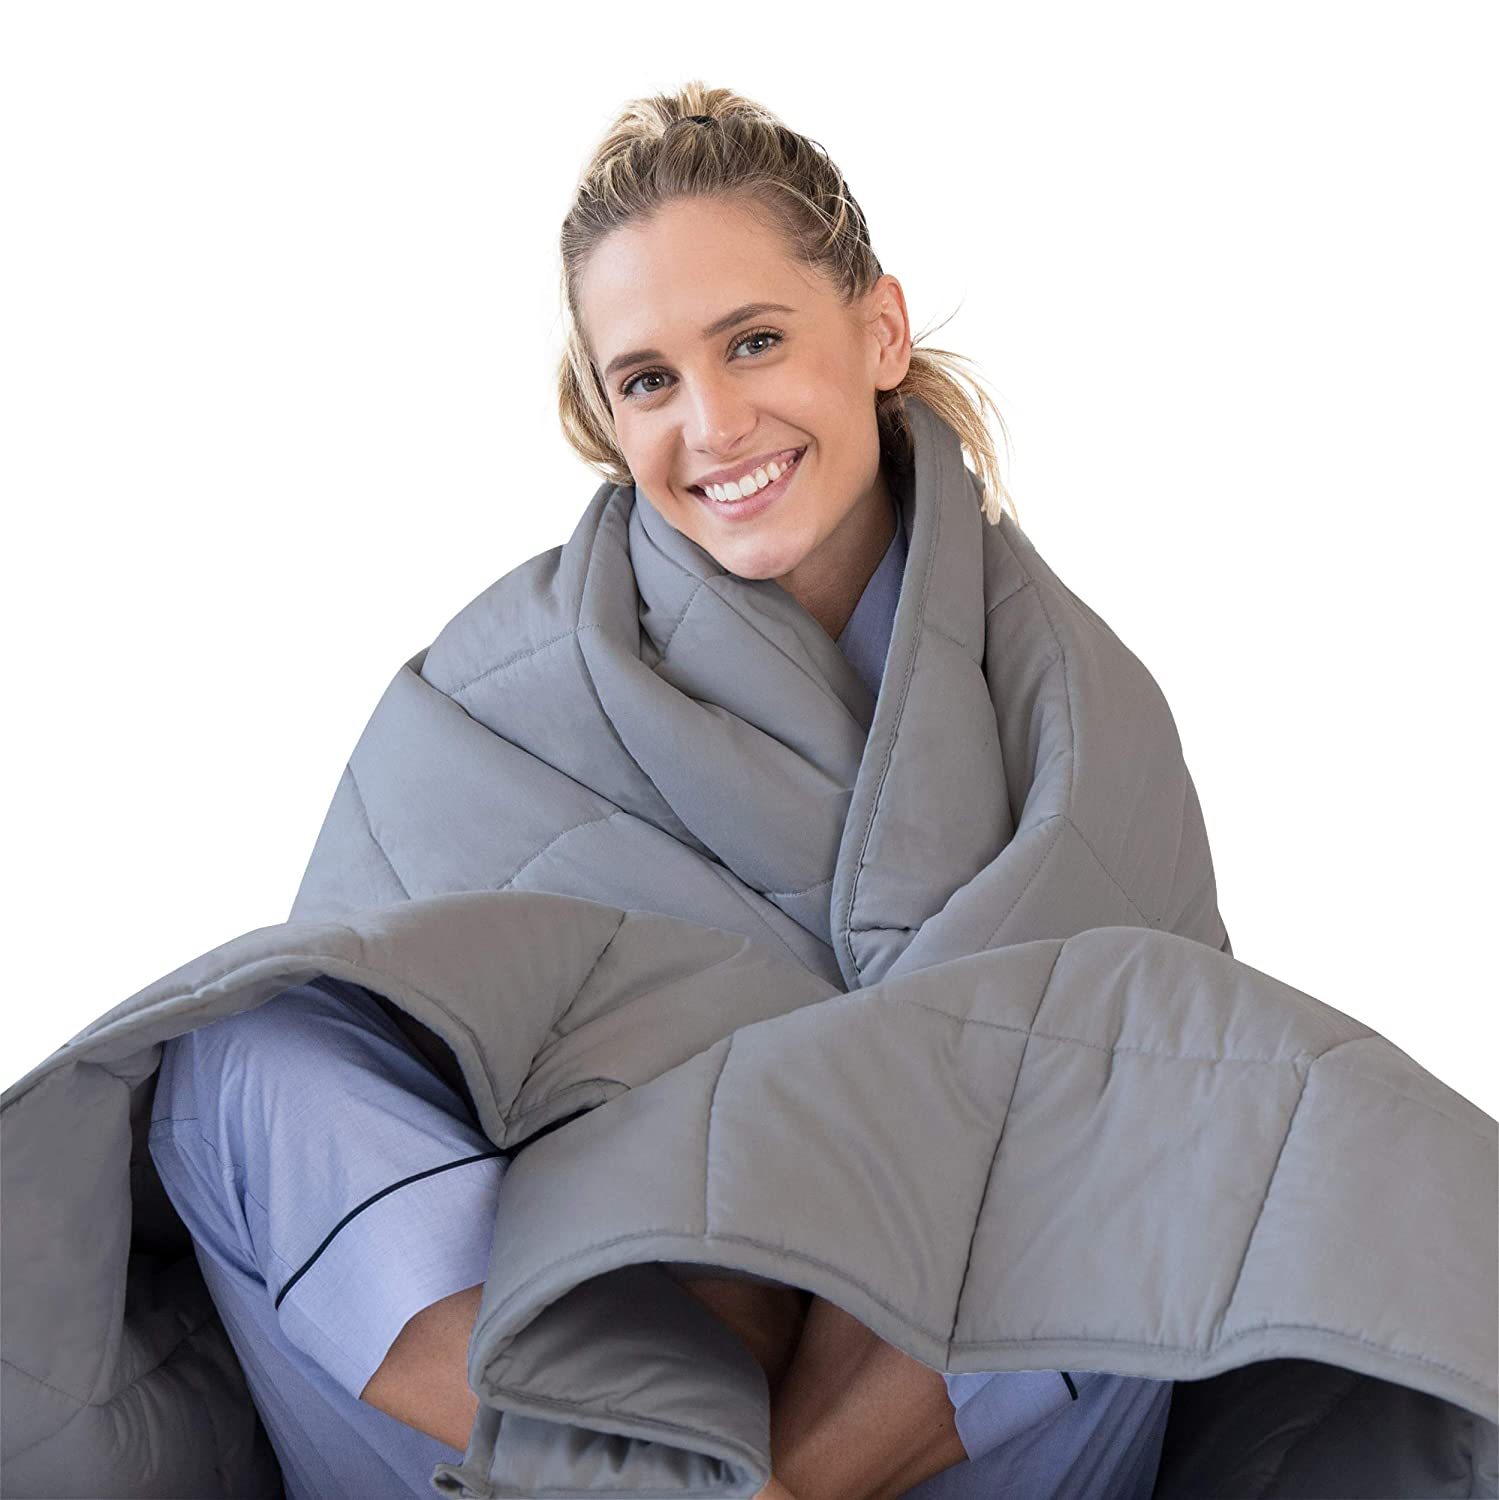 LUNA Adult Weighted Blanket | 25 lbs - 80x87 - King Size Bed | 100% Oeko-Tex Certified Cooling Cotton & Premium Glass Beads | Designed in USA | Heavy Cool Weight for Hot & Cold Sleepers | Dark Grey